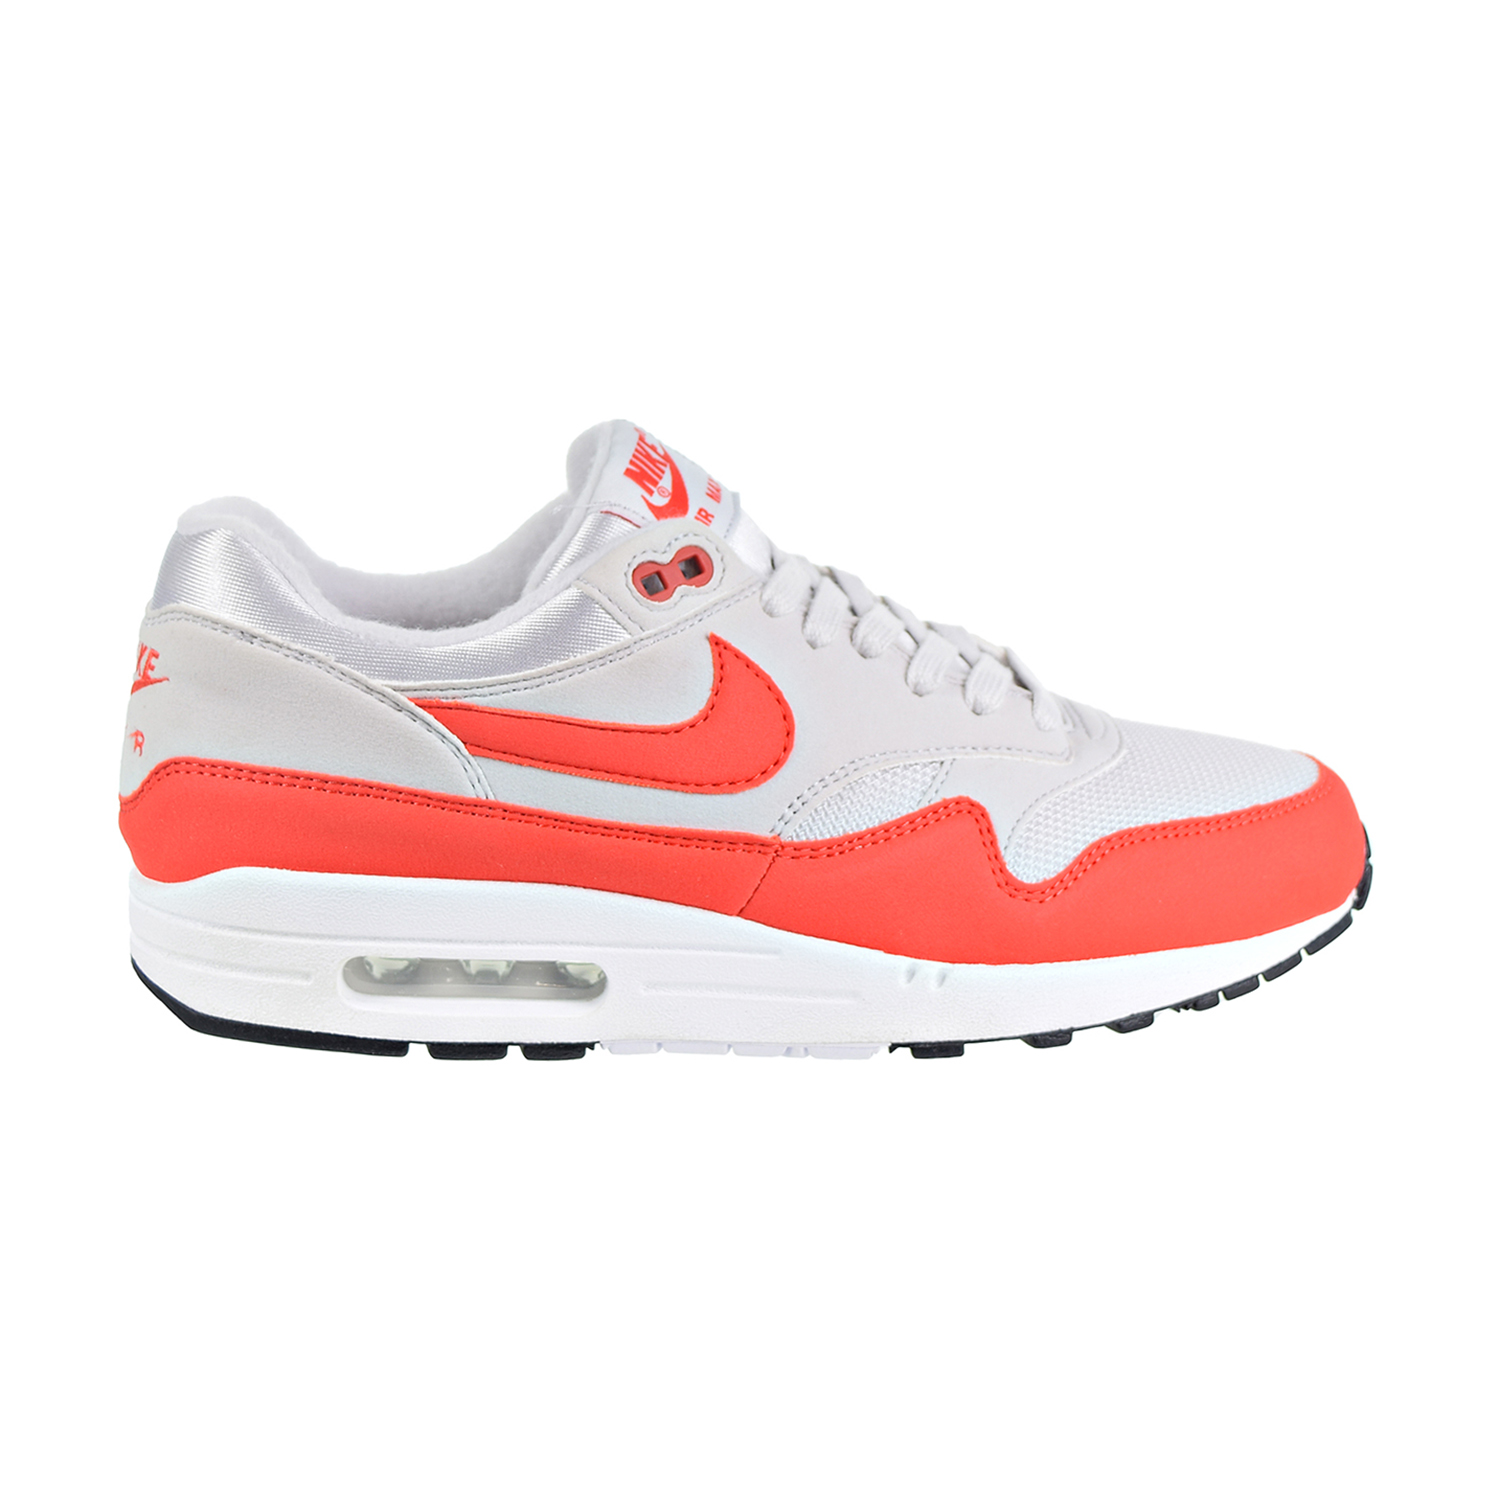 outlet store 390fa a10cd Details about Nike Air Max 1 Women s Shoes Vast Grey Habanero Red 319986-035